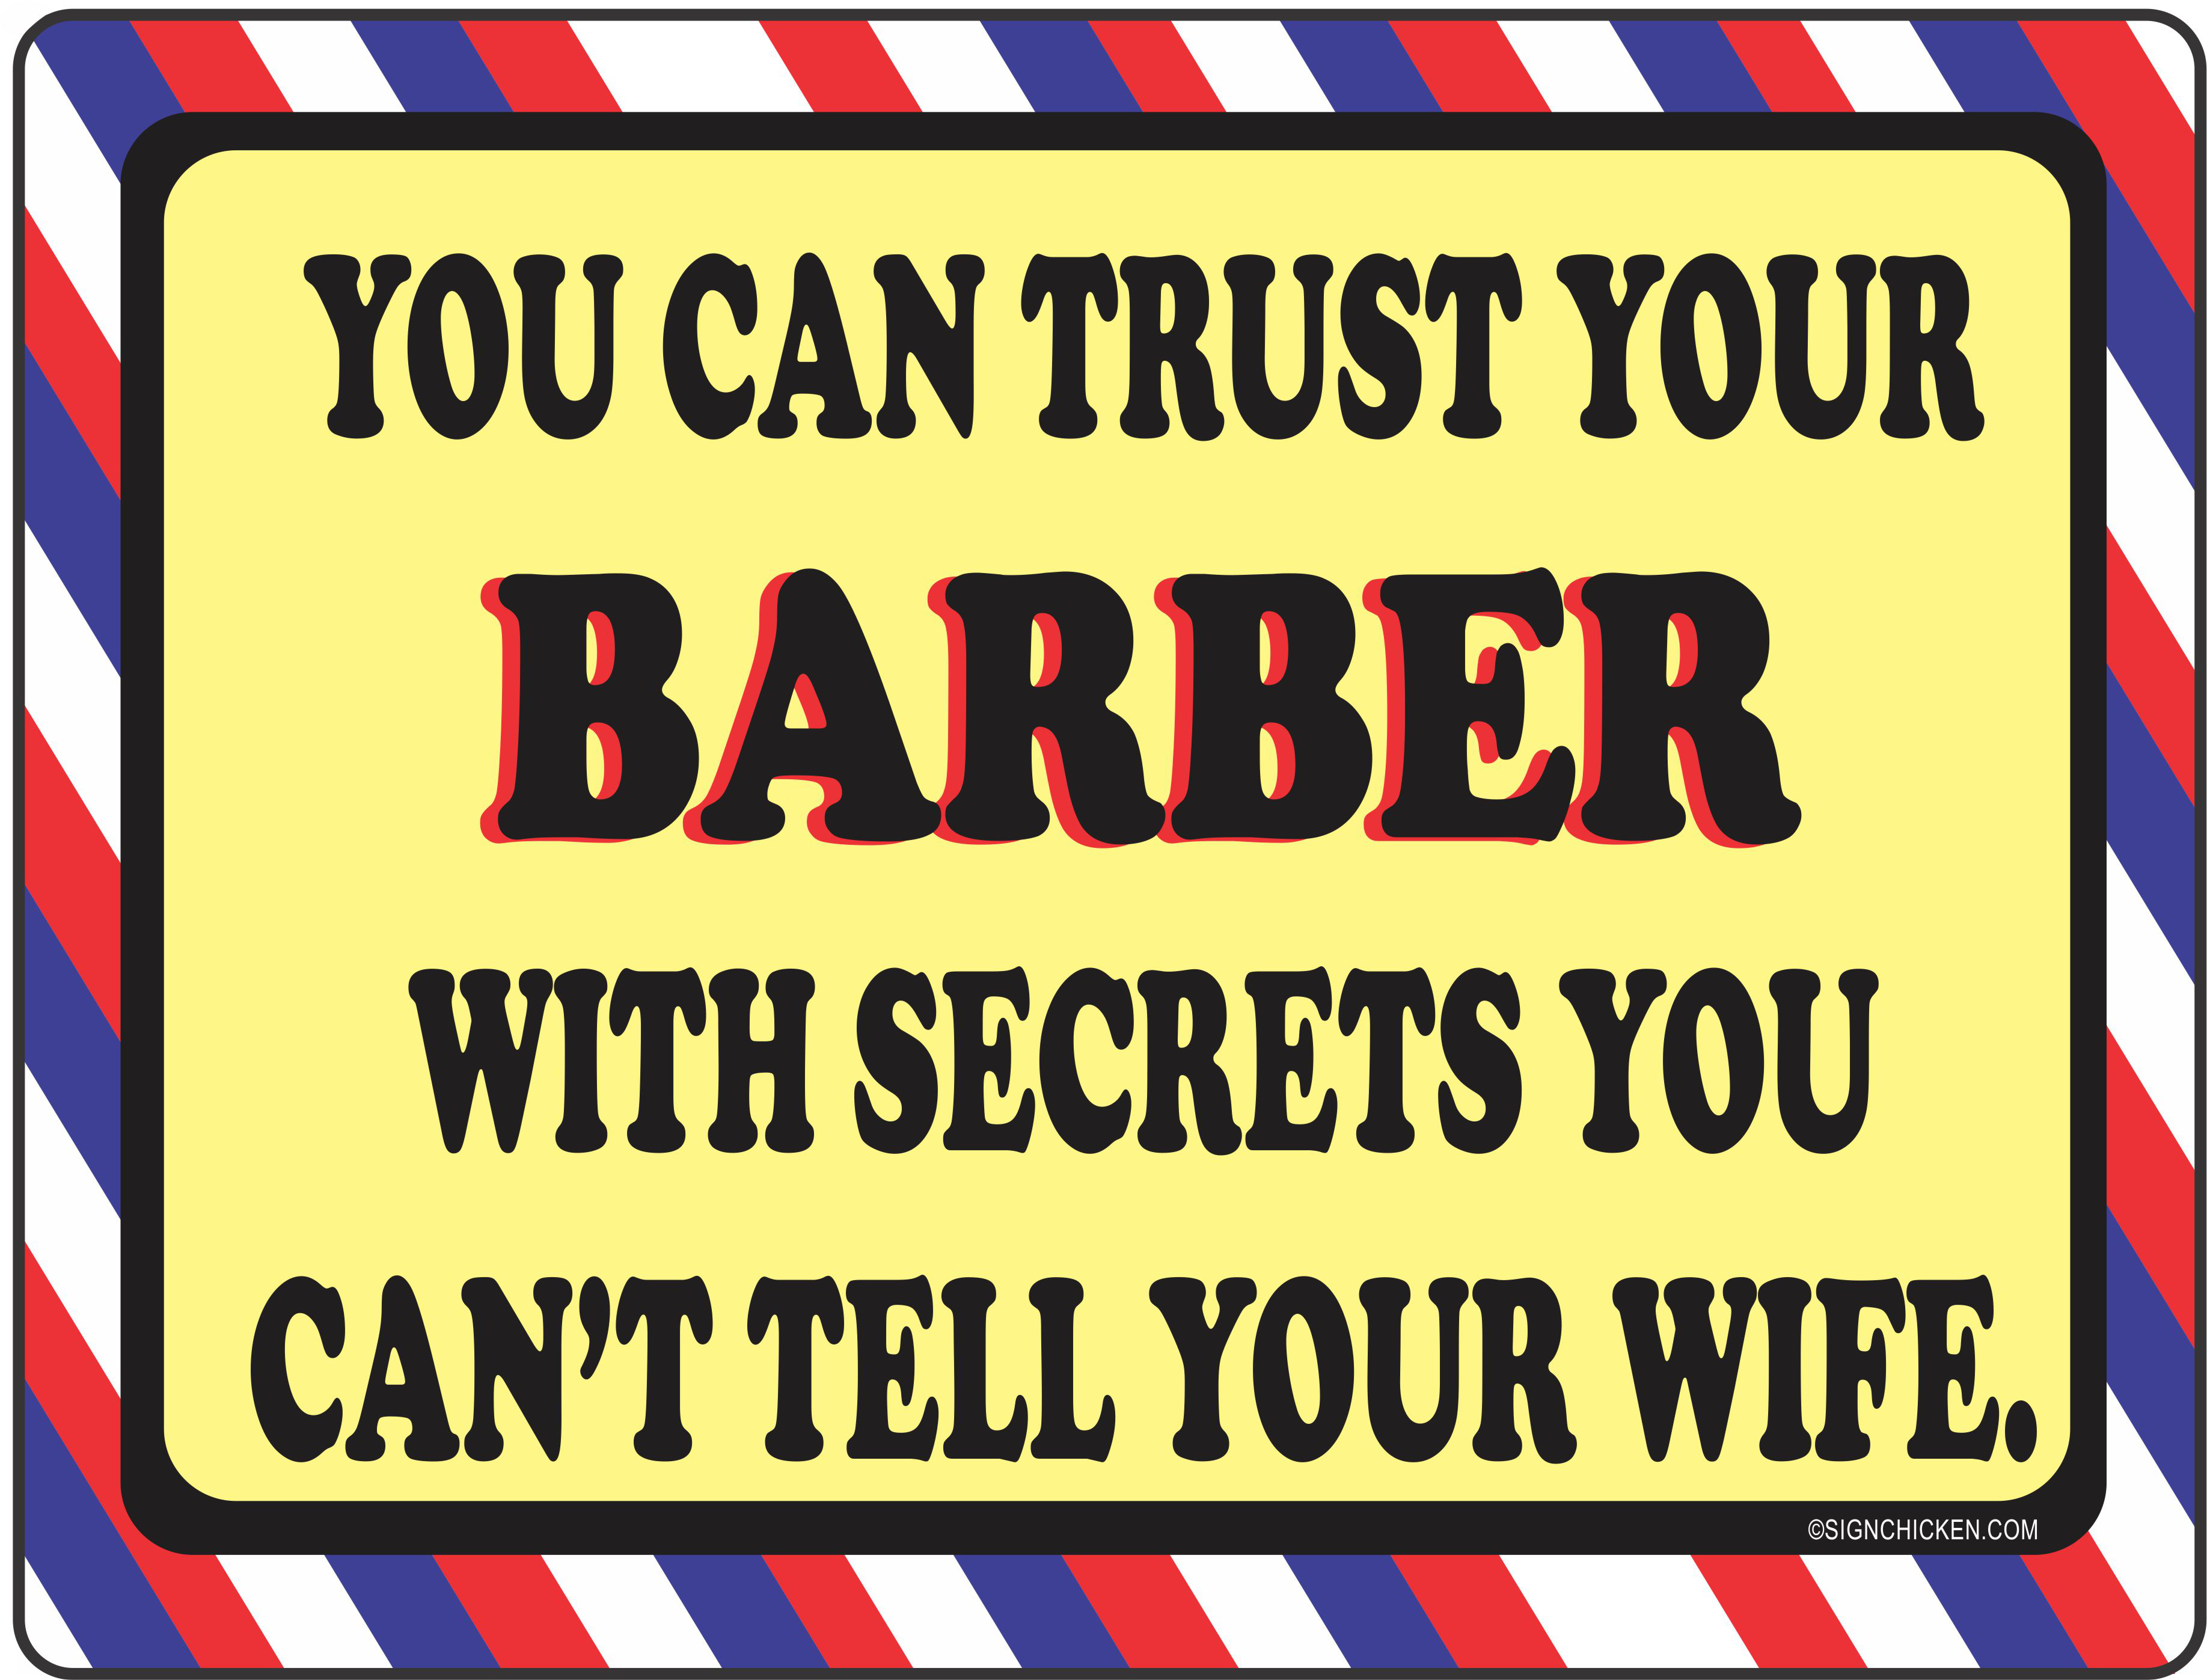 Funny Barber Quotes: Funny Barber Quotes - Google Search